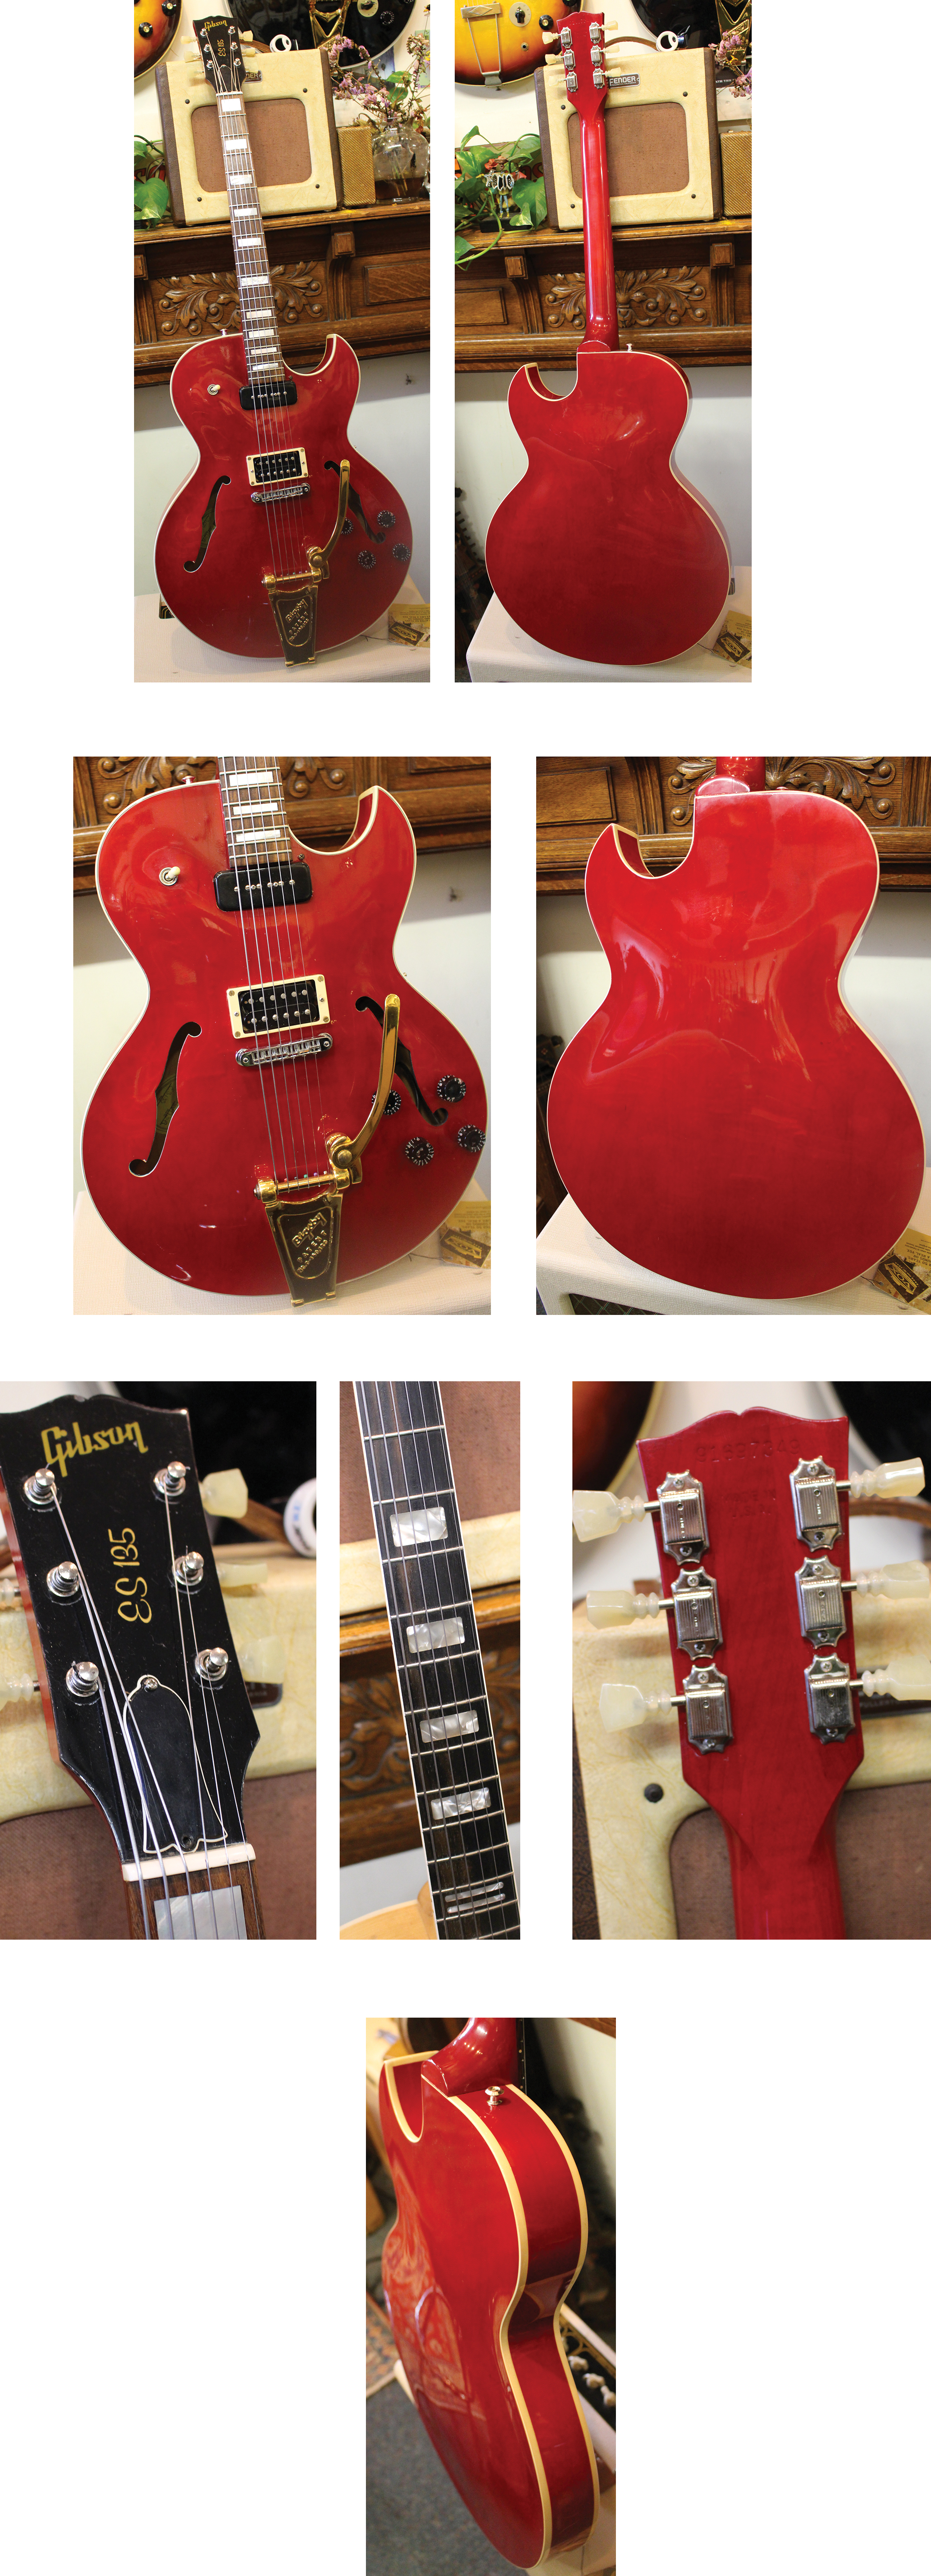 Lark Street Music Vintage Guitars Teaneck Nj Guitar Plans Further Gibson Es 355 2016 Explorer Wiring 2900 135 1997 Cherry 2 P 90s But The Lead Pickup Changed To A Humbucker Bigsby Added And Pearl Block Inlays Fretboard